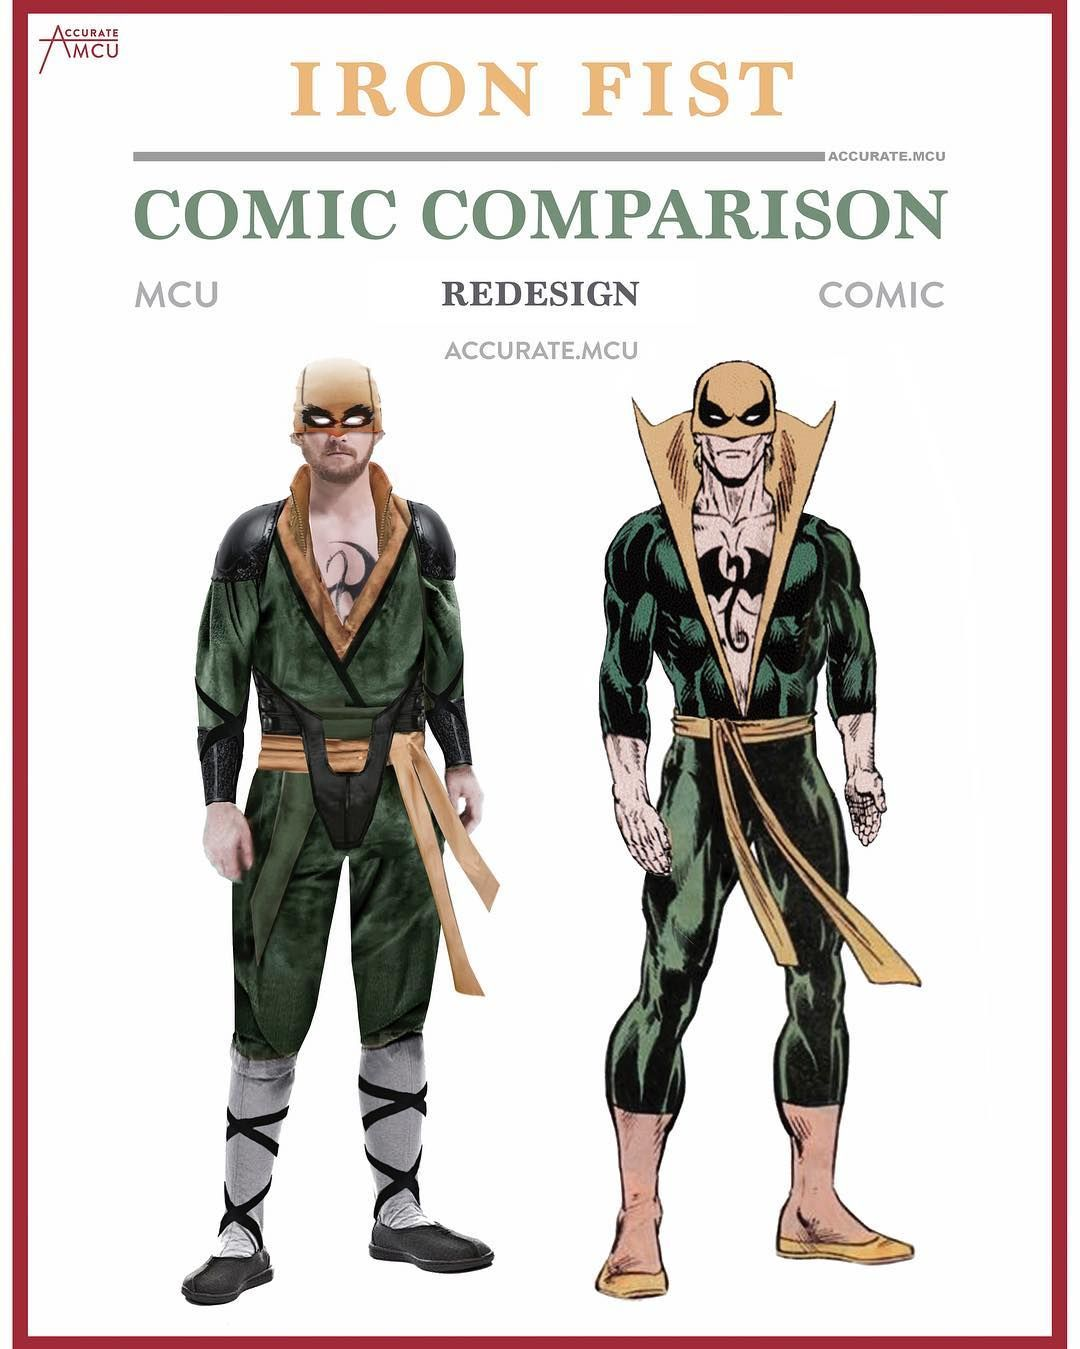 Mcu Libros Pin De Julio Frausto En Marvel Iron Fist Poing De Fer Y